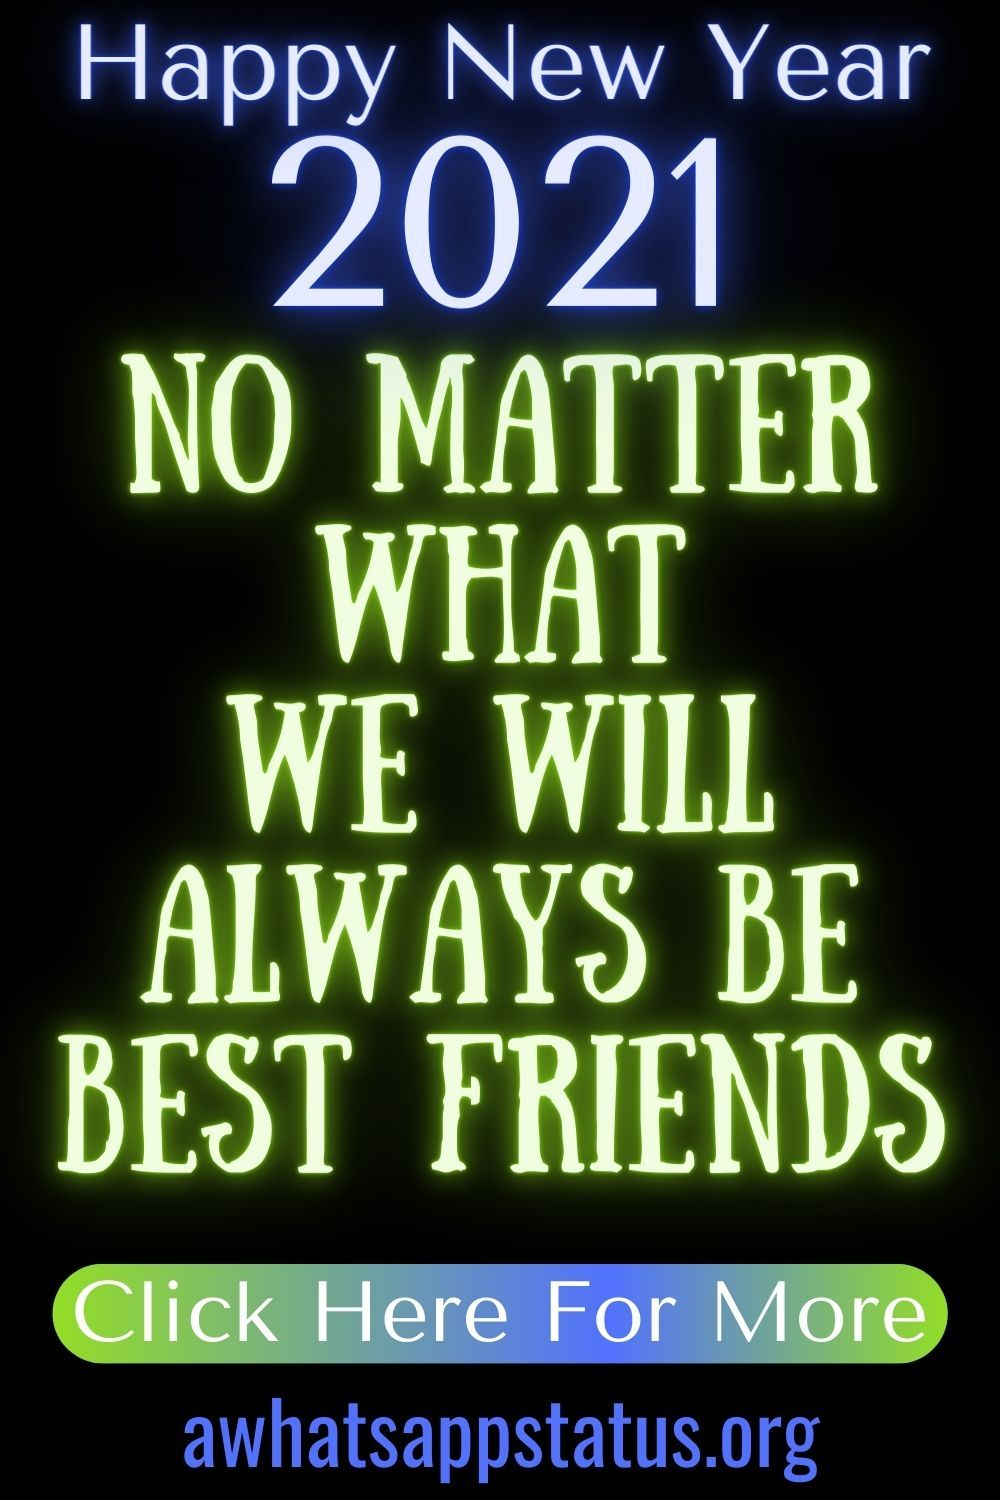 15 Happy New Year 2021 Quotes For Friends No Matter What We Will Always Be Best Friends Friends Quotes Bff Quotes Happy New Year Quotes